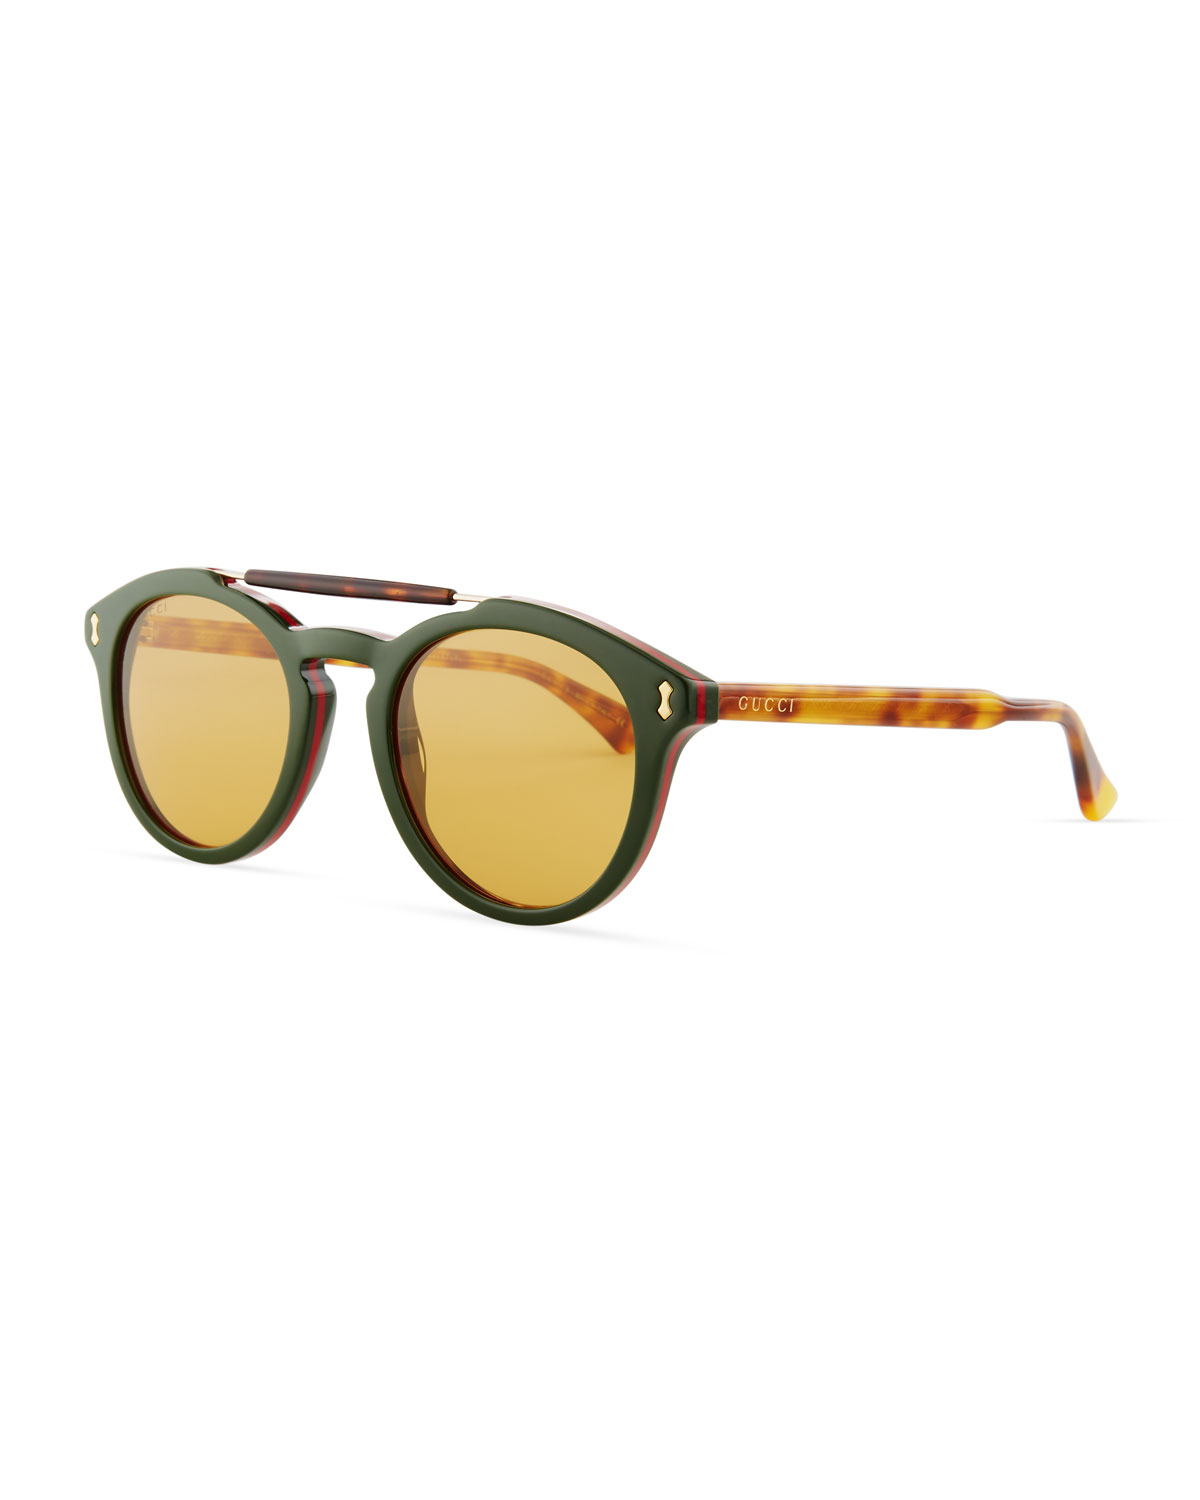 d06bb29f08b Gucci Vintage Round Acetate Sunglasses